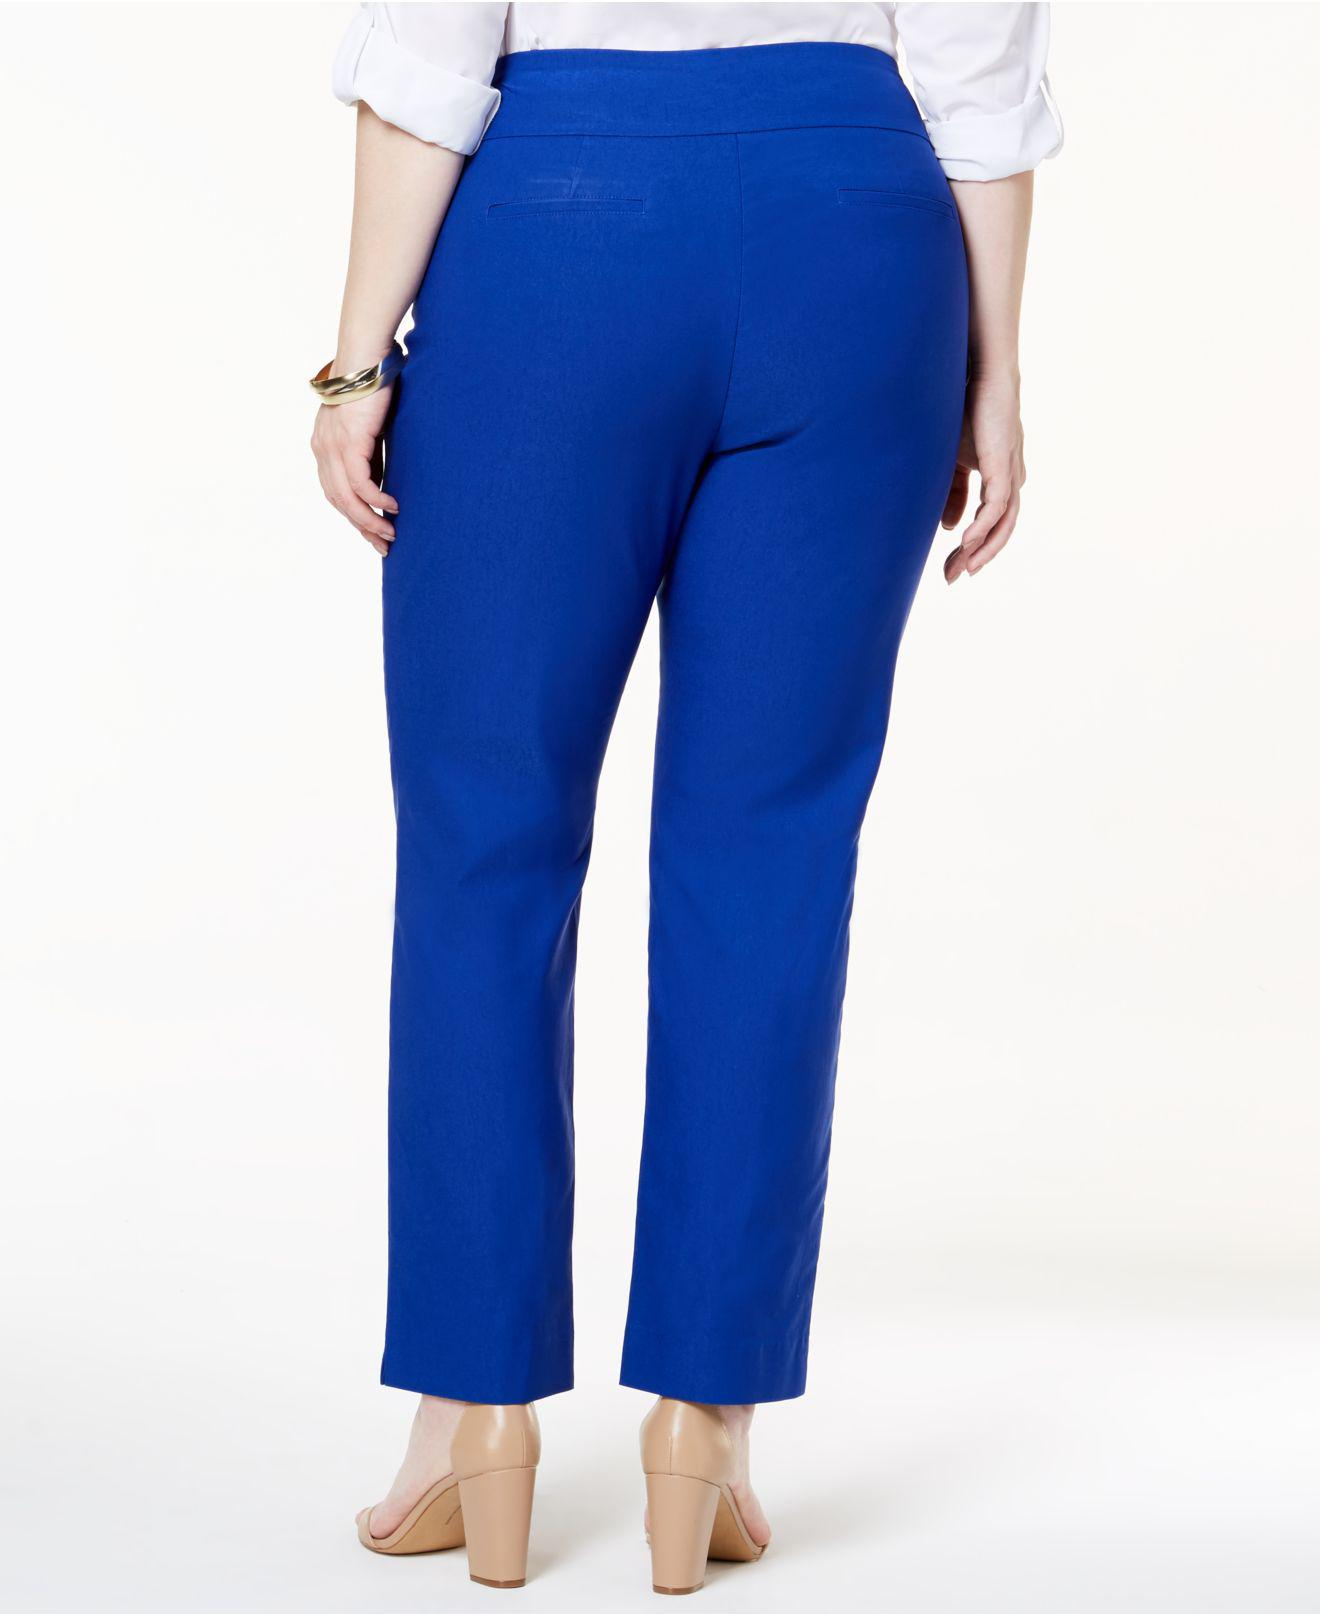 137768b5e5814 Lyst - Charter Club Plus Size Cambridge Tummy-control Pull-on Pants ...